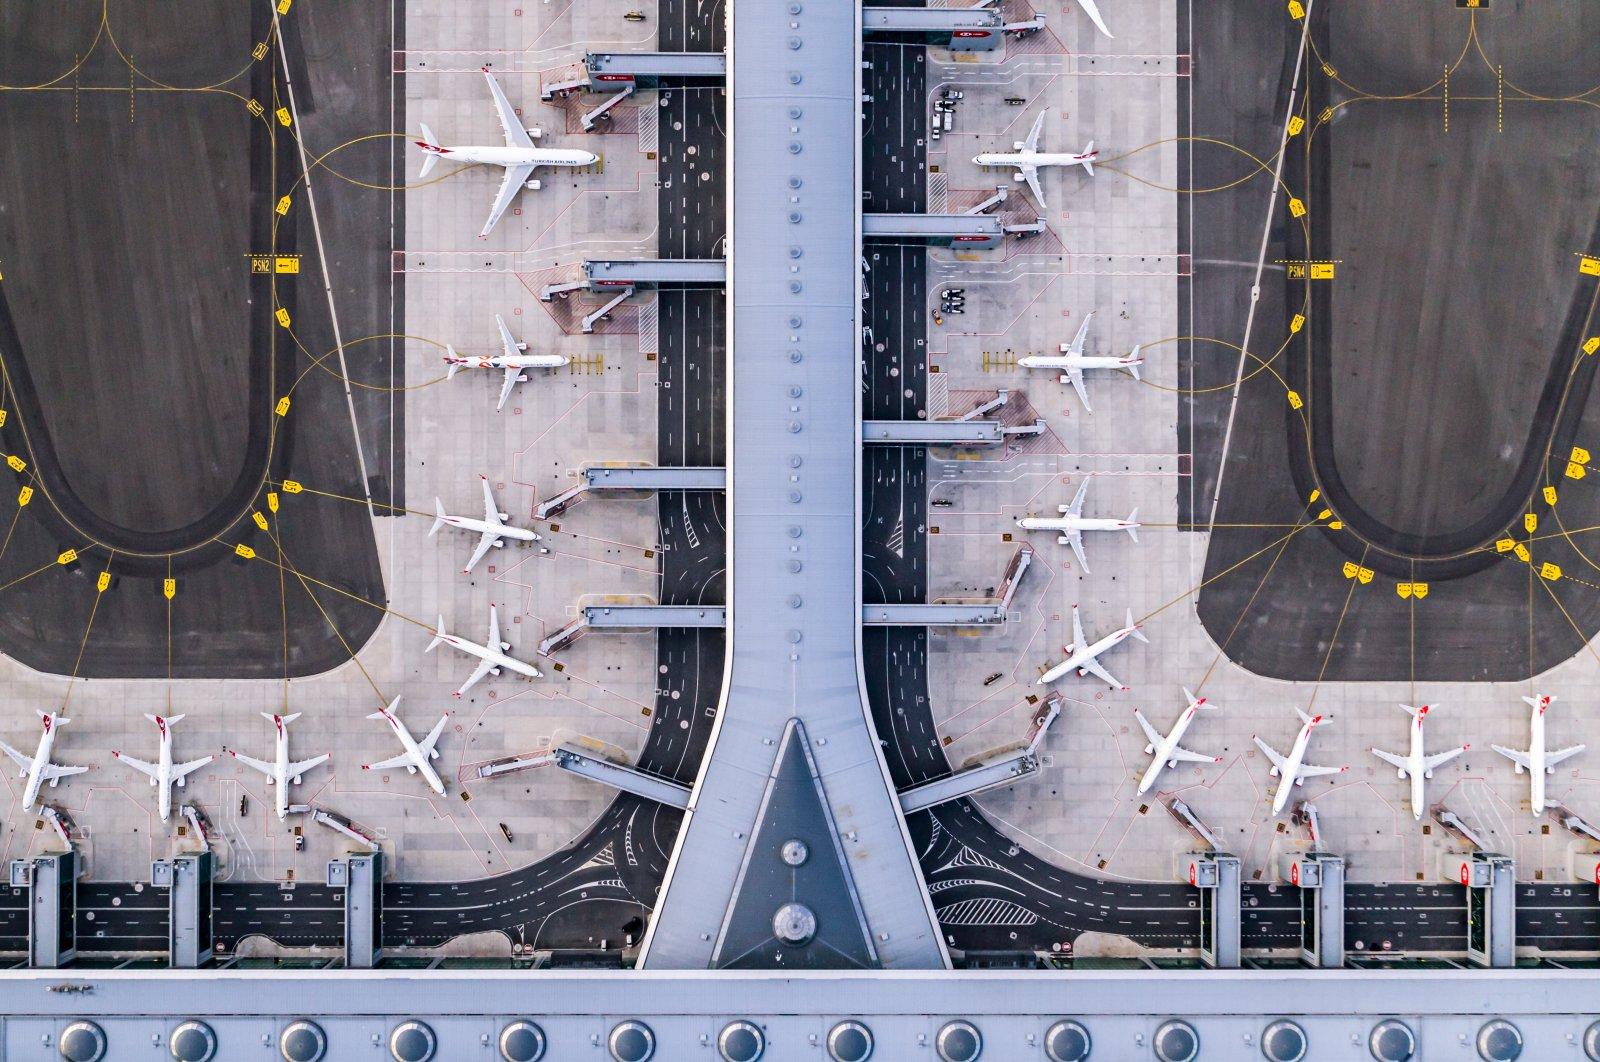 Drone footage provided on Dec. 15, 2020  shows planes parked at Istanbul Airport, Istanbul, Turkey. (Courtesy of IGA)